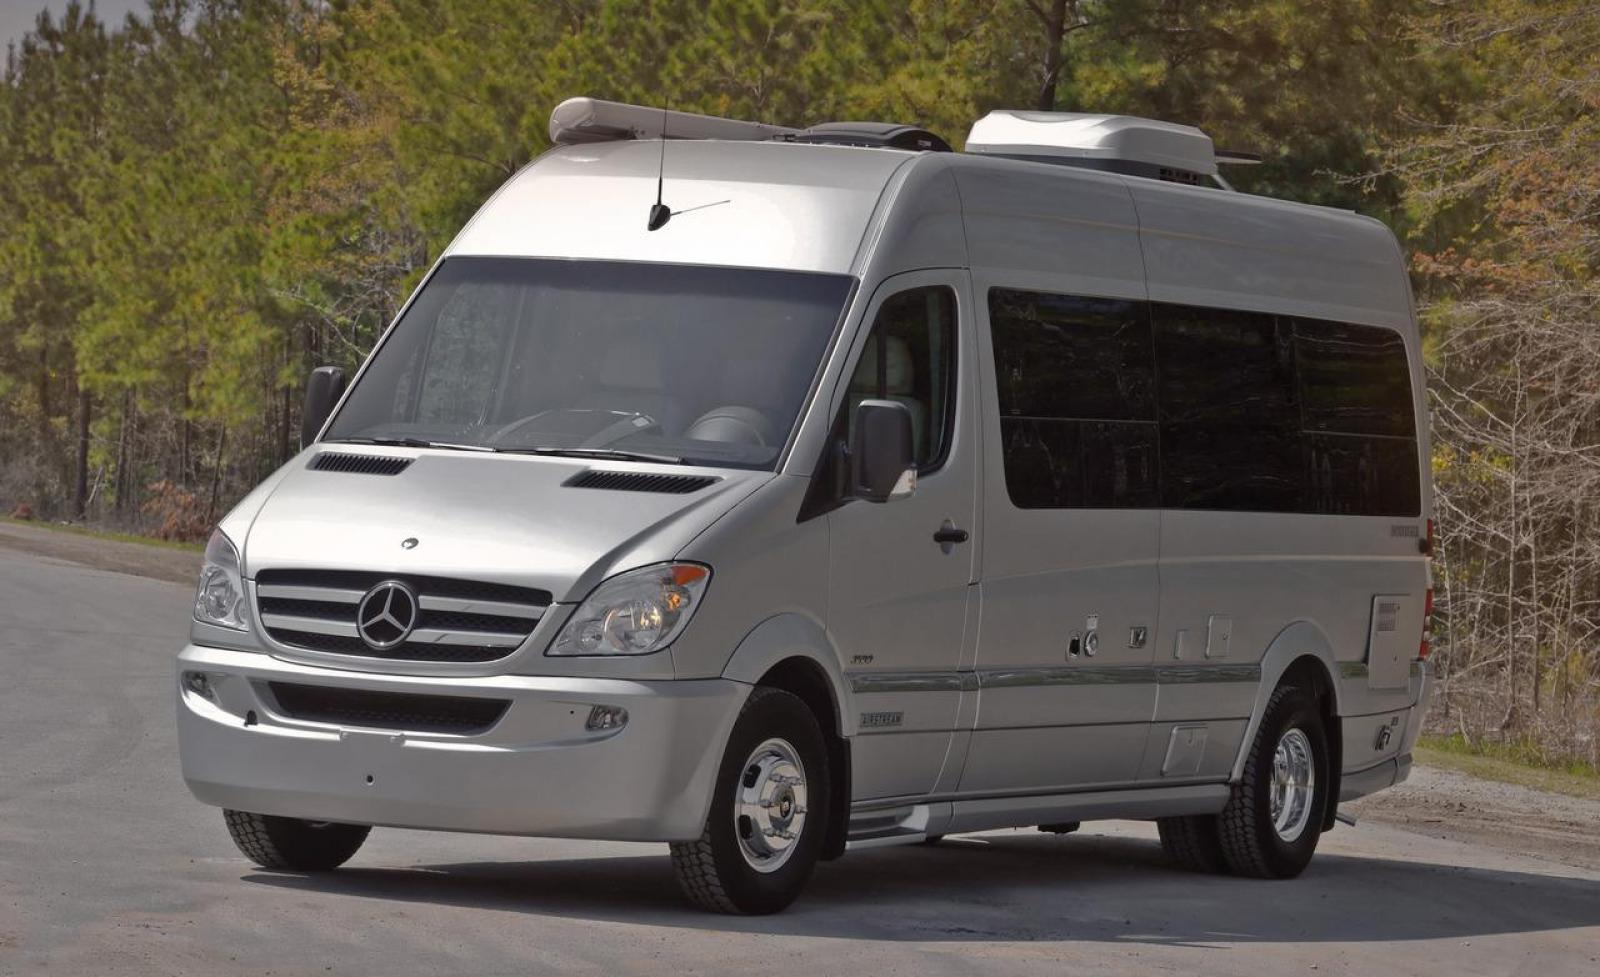 2010 Mercedes Benz Sprinter Information And Photos Zombiedrive 2012 Fuel Filter Location 800 1024 1280 1600 Origin